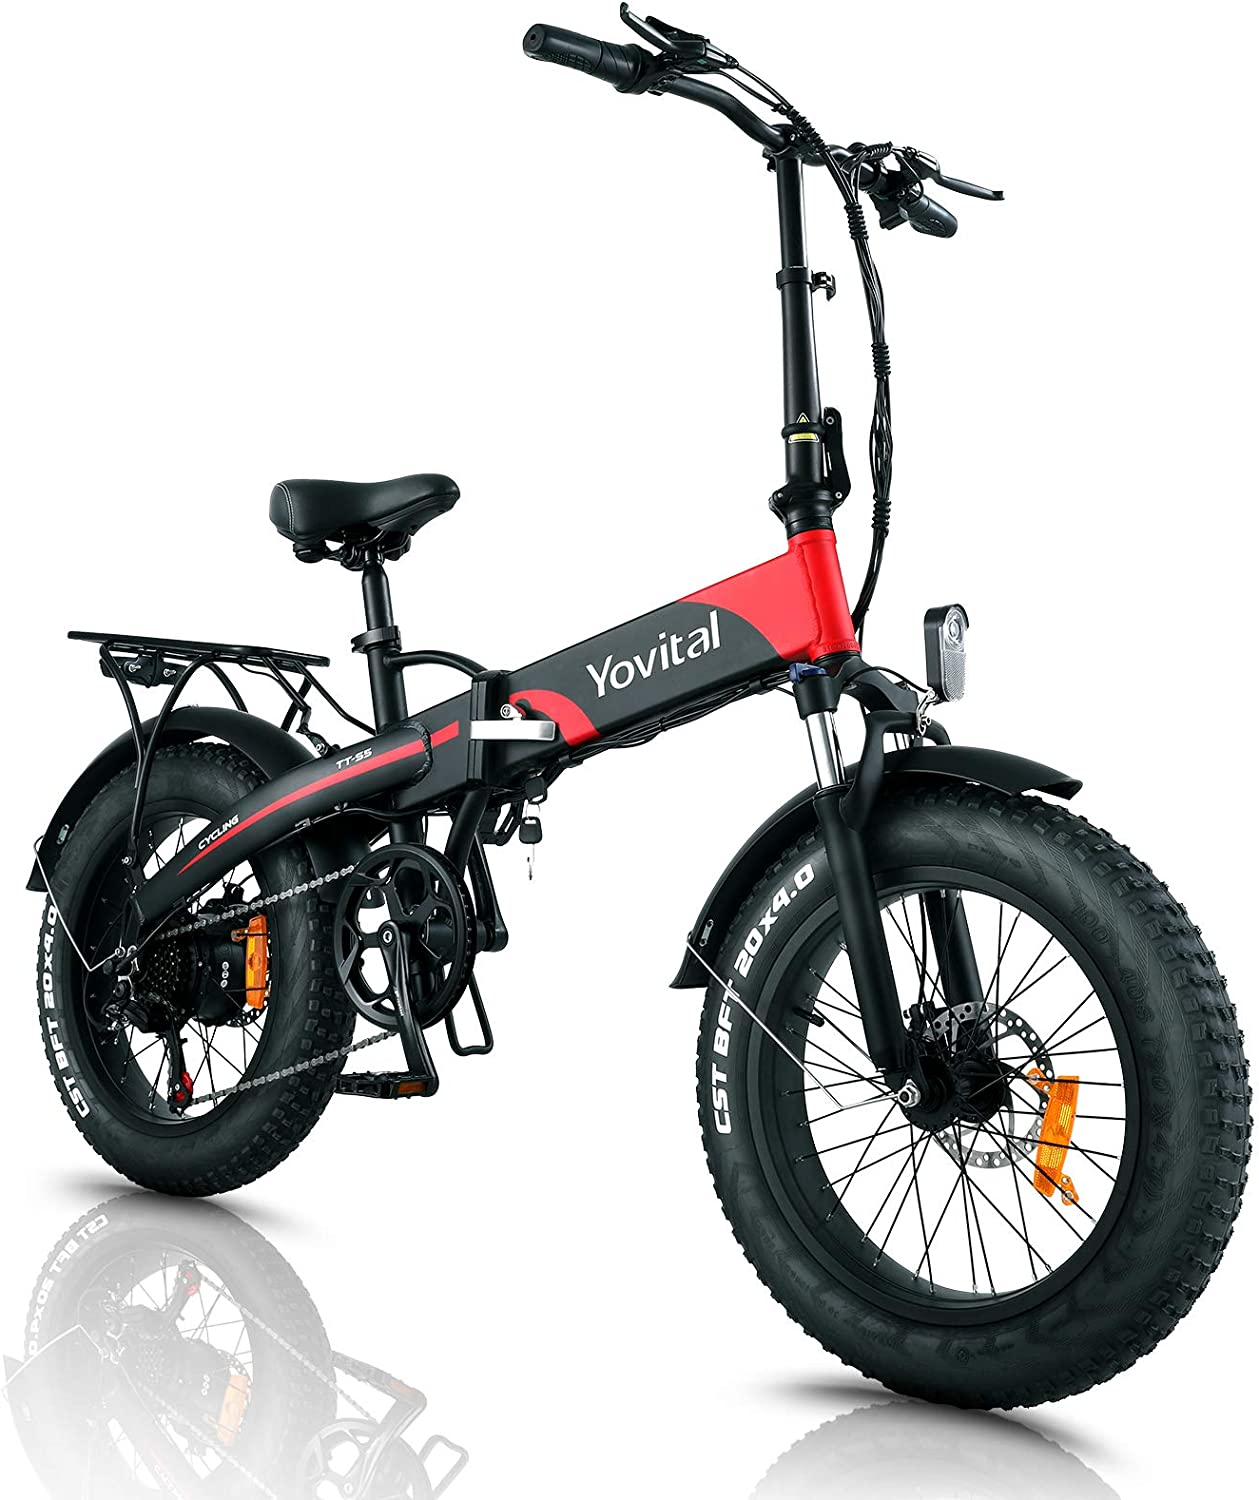 YOVITAL fat bike